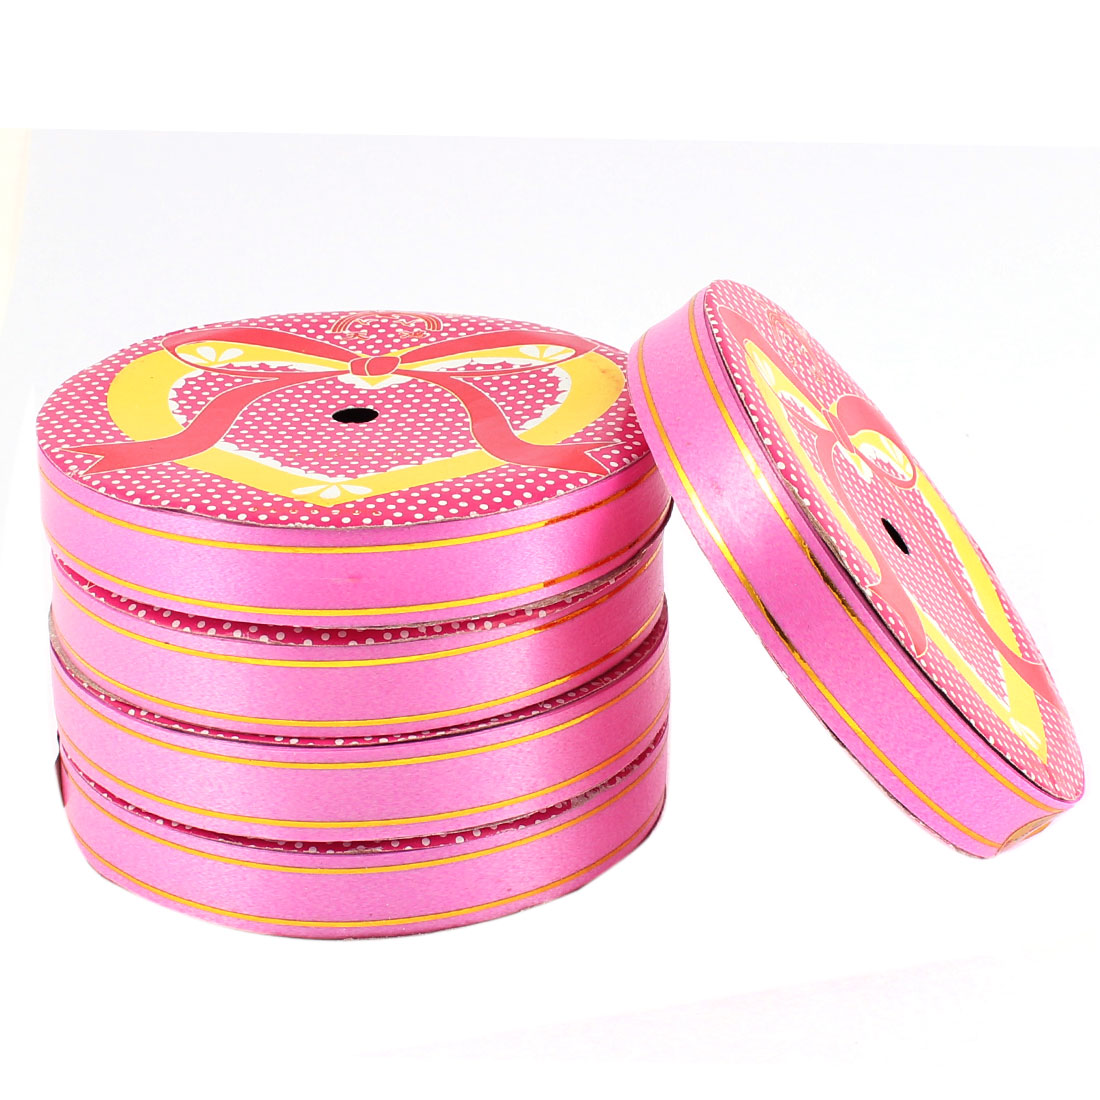 Wedding Festival DIY Gift Packing Ribbon Roll Tape 1.5cm Width 16 Yards 5pcs